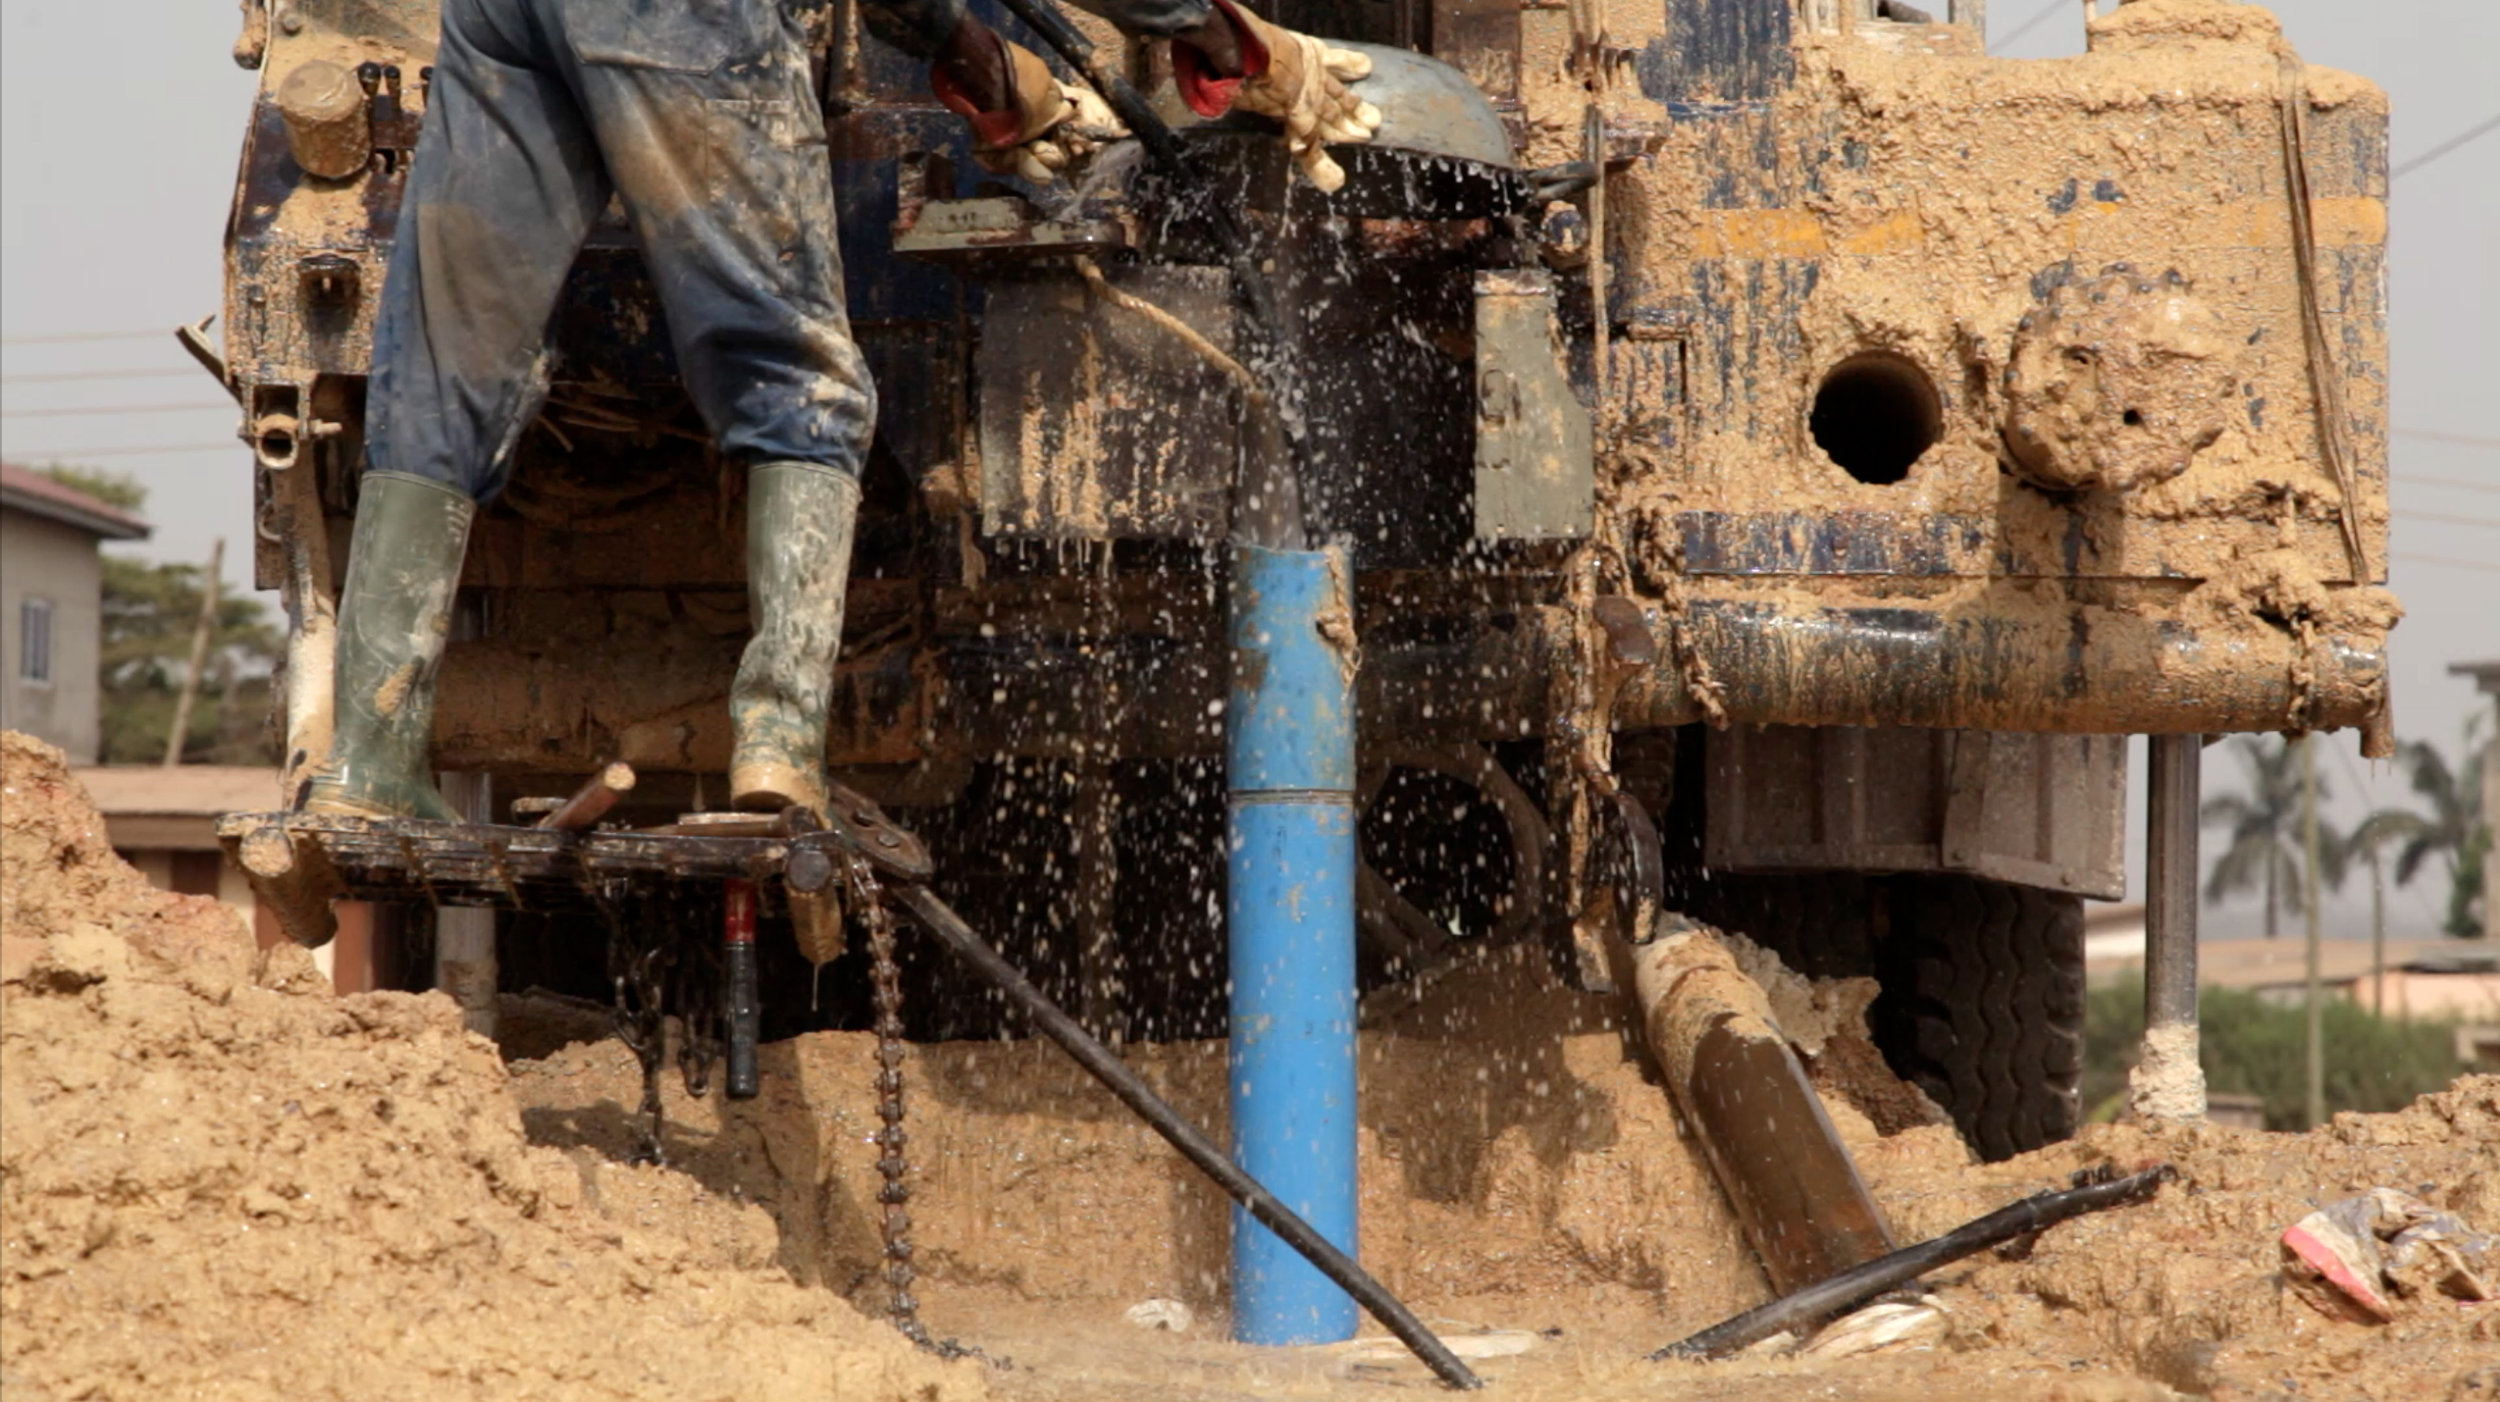 A JOISSAM employee works on a borehole in Kumisa, Ghana. © Laura Elizabeth Pohl